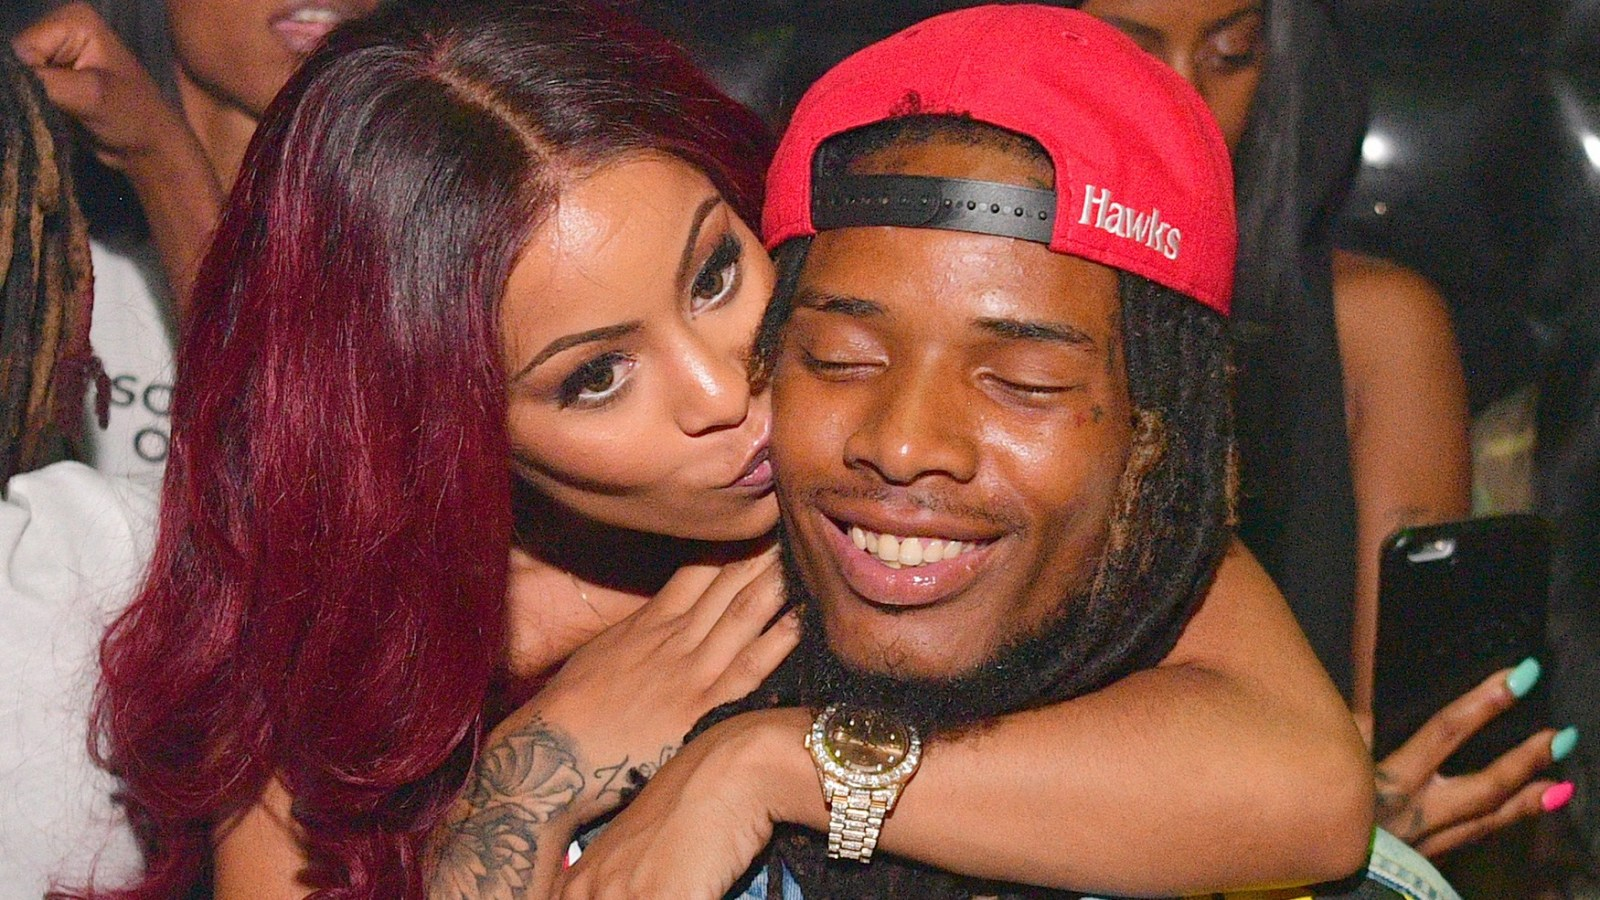 Alexis Skyy Shared An Emotional Event - She Addresses An Experience With Helping A Homeless Mother And Her Son